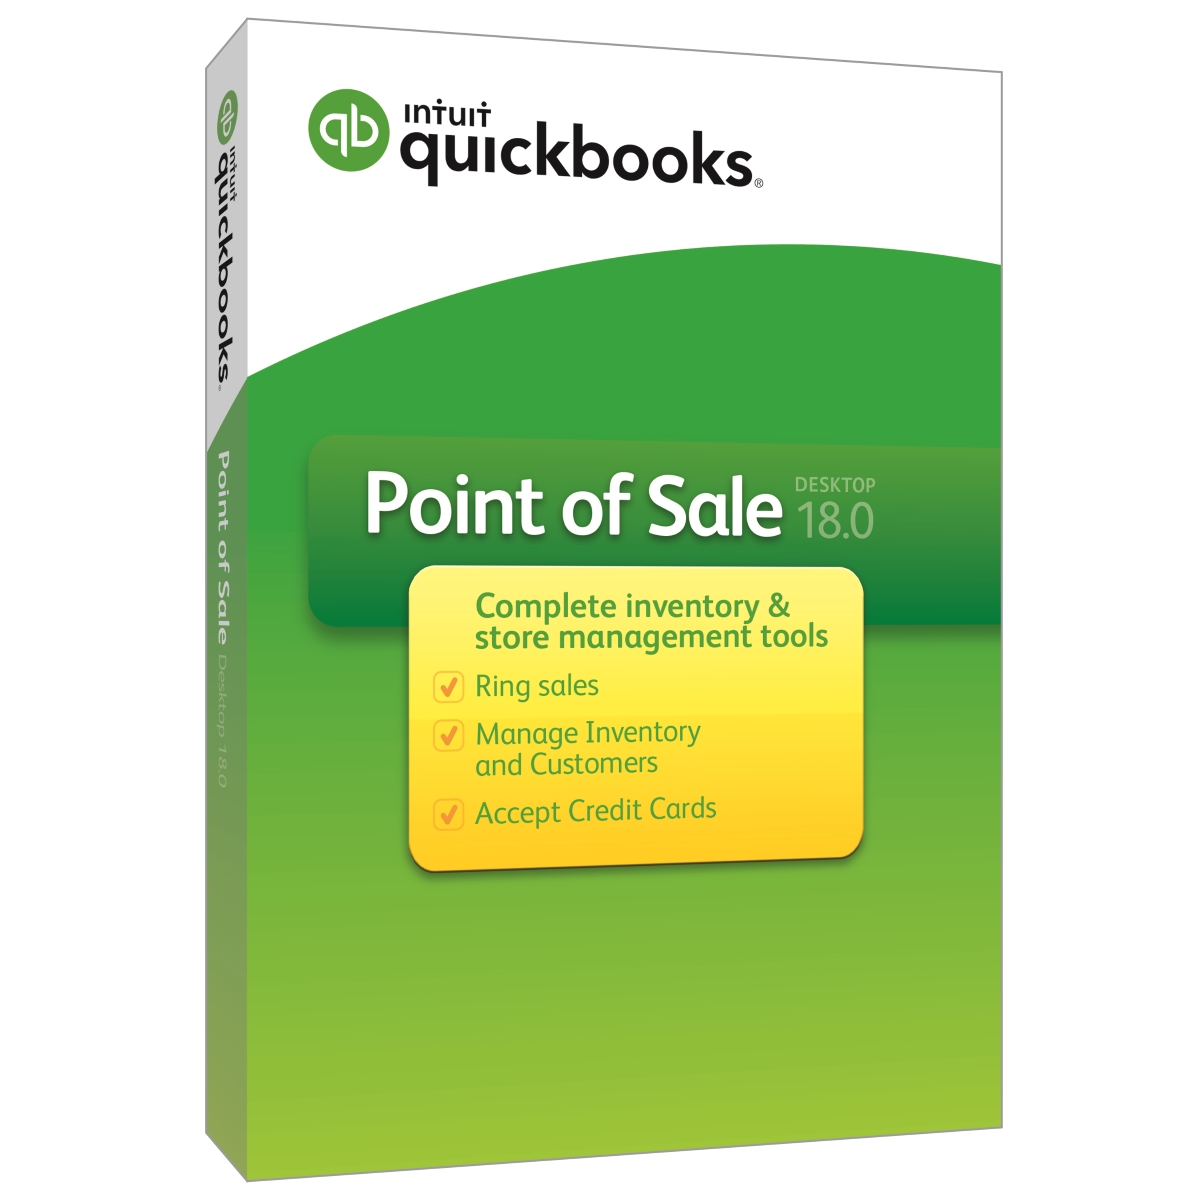 QuickBooks Point of Sale v18.0 (Multi Store) - 1 User